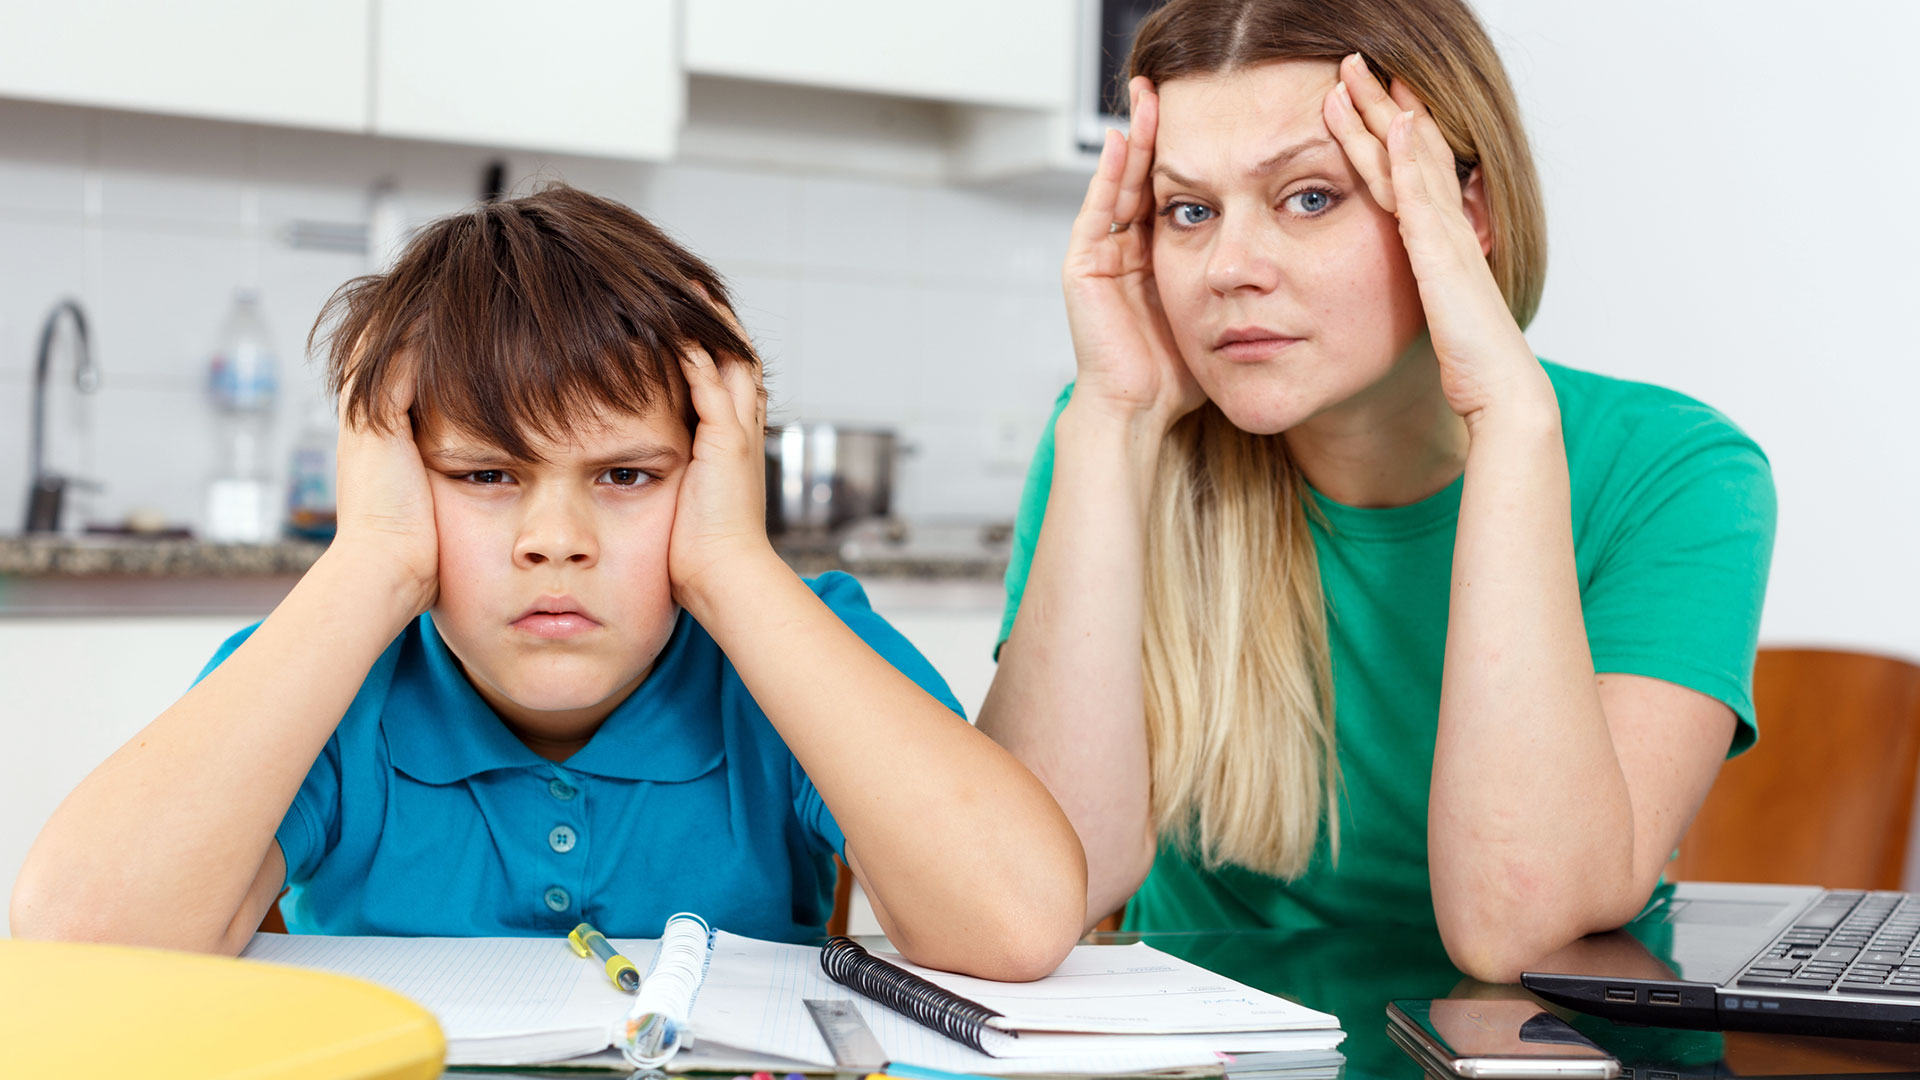 A mom and her son look fed up with learning at home.